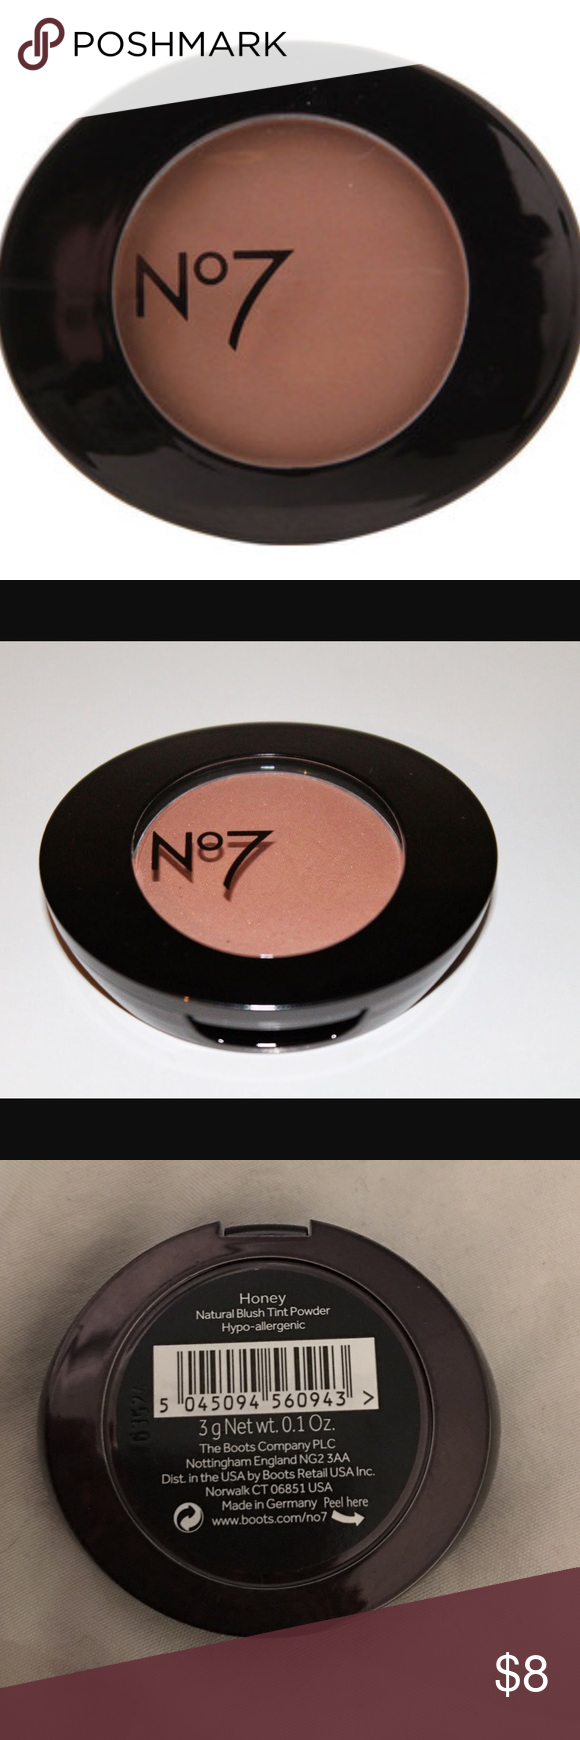 New Boots No 7 Blush In Honey New Boots No 7 Blush In Honey Brand New Beautiful Natural Color Hypoallergenic Please See P Blush Makeup Items Fashion Design